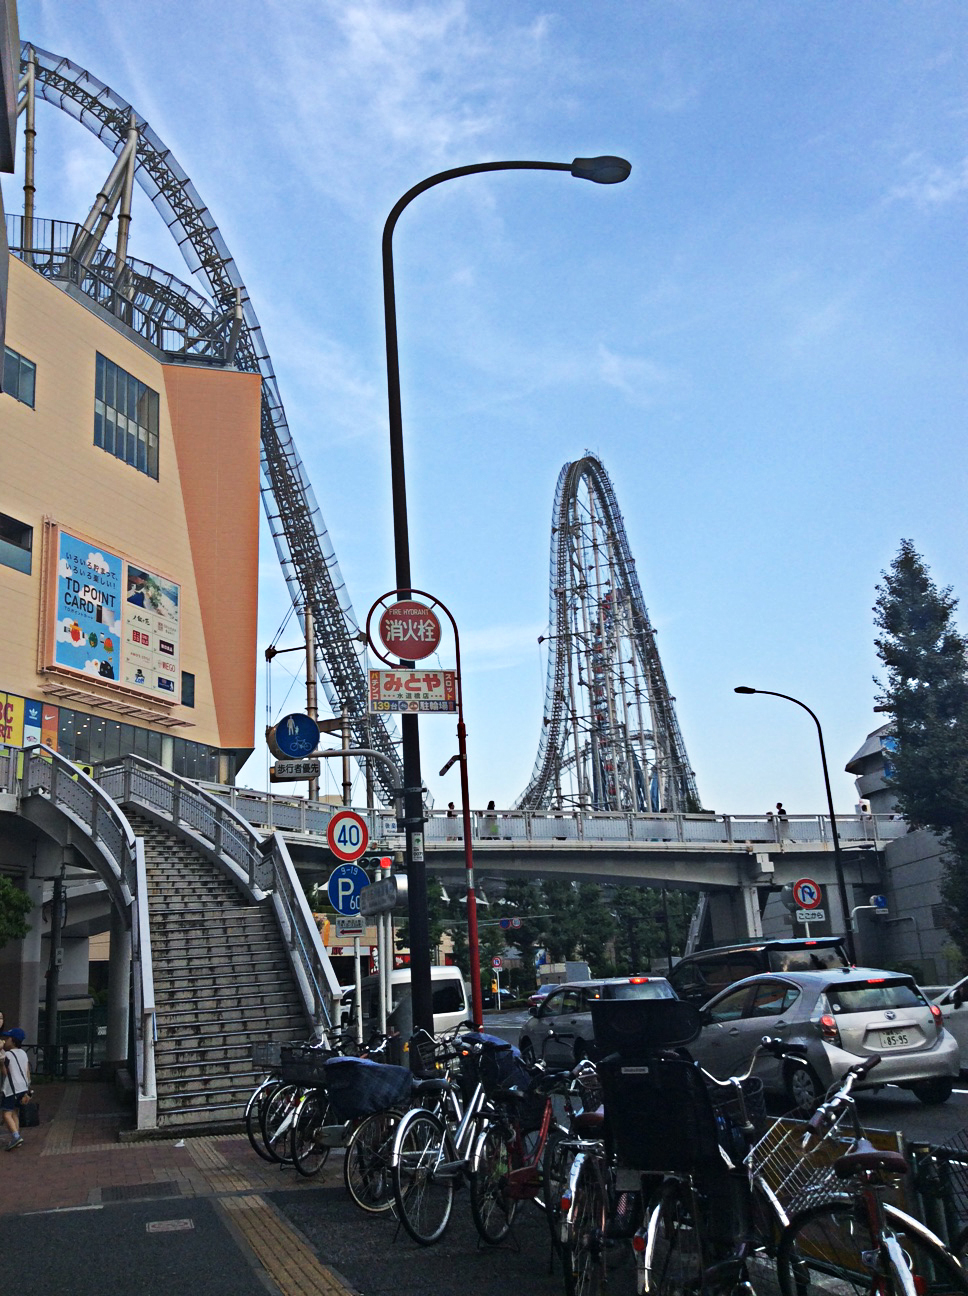 looking into the blue sky, the helter-skelter ride rises and dips down into the large buiding on the left of the picture; rows of bicycles occupy the forground.